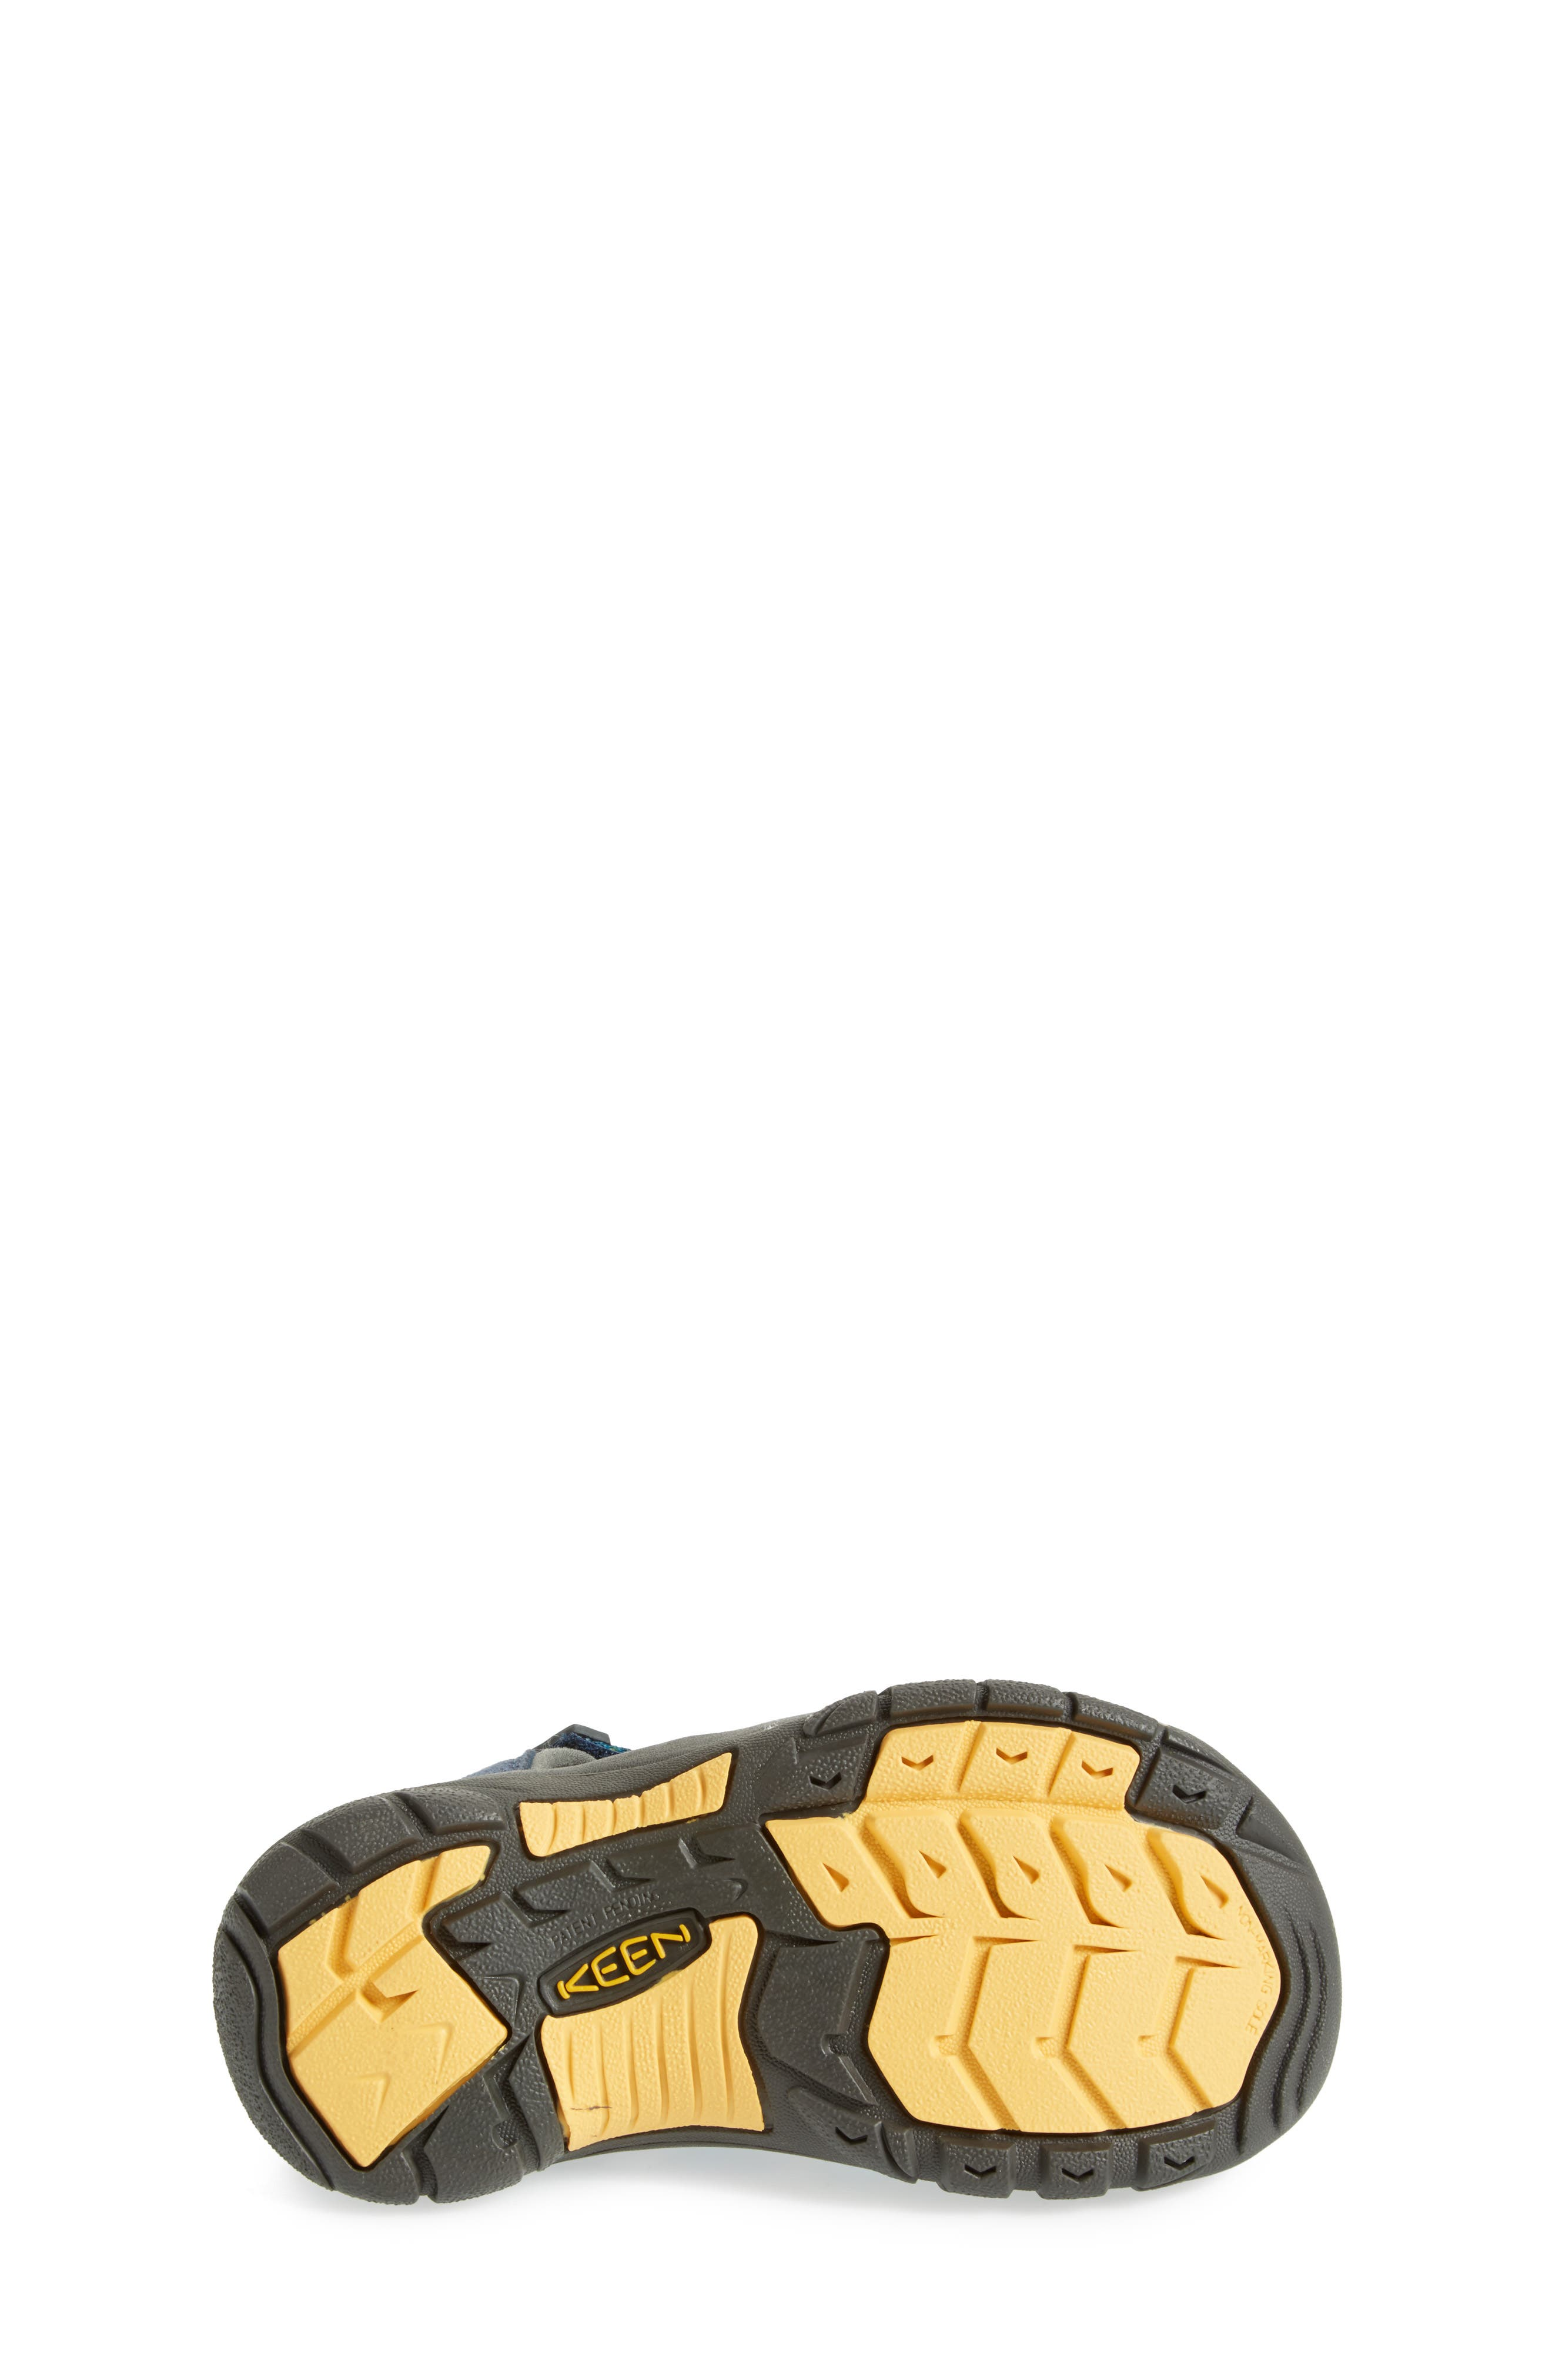 ,                             'Newport H2' Water Friendly Sandal,                             Alternate thumbnail 336, color,                             406